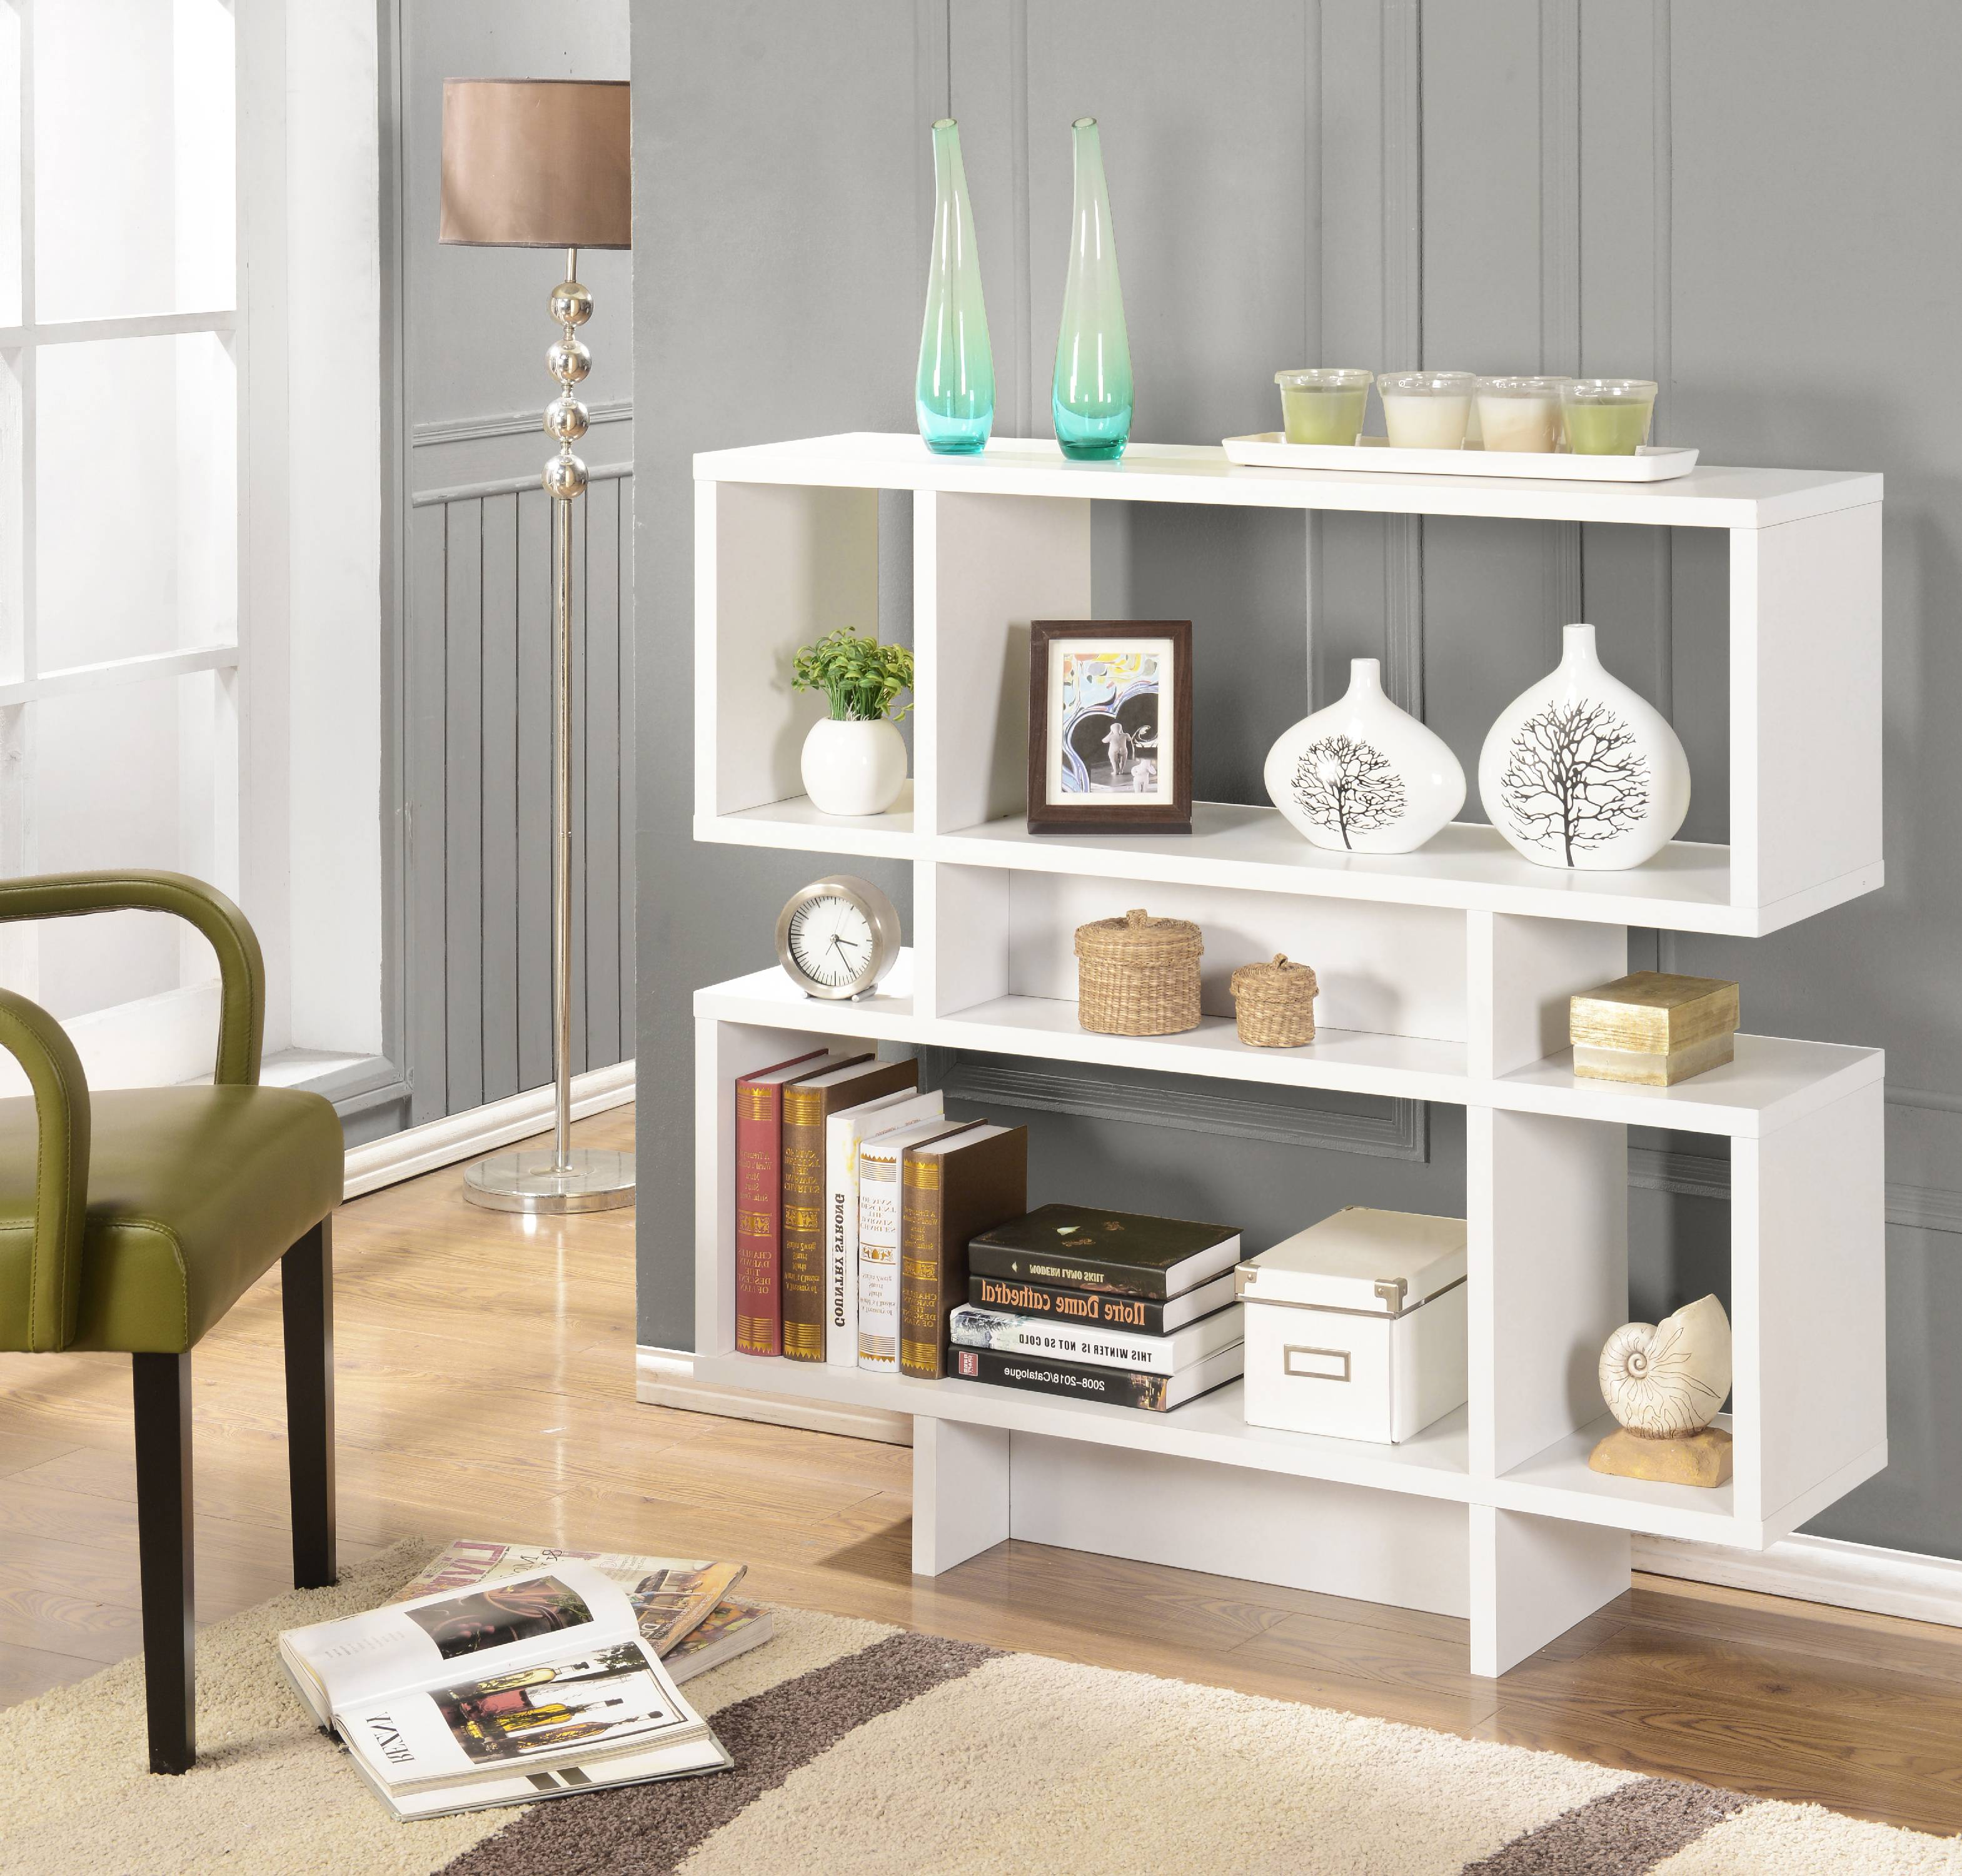 White Wood 7 Cube 3 Tier Bookcase Display Shelves Cabinet For Home & Office